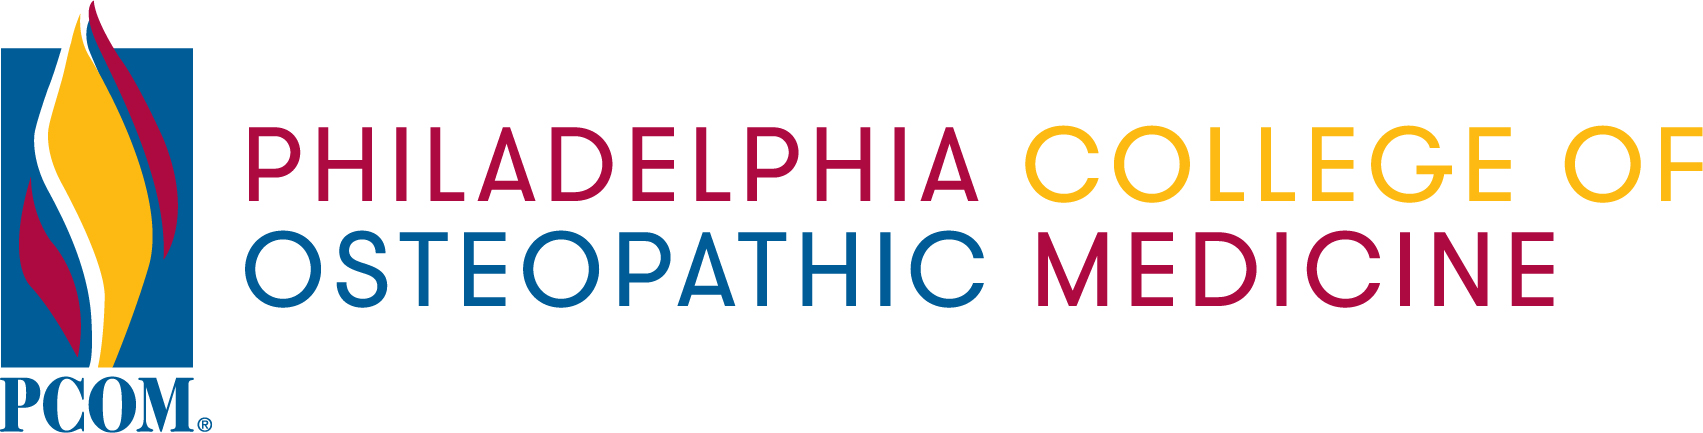 Philadelphia College of Osteopathic Medicine Georgia